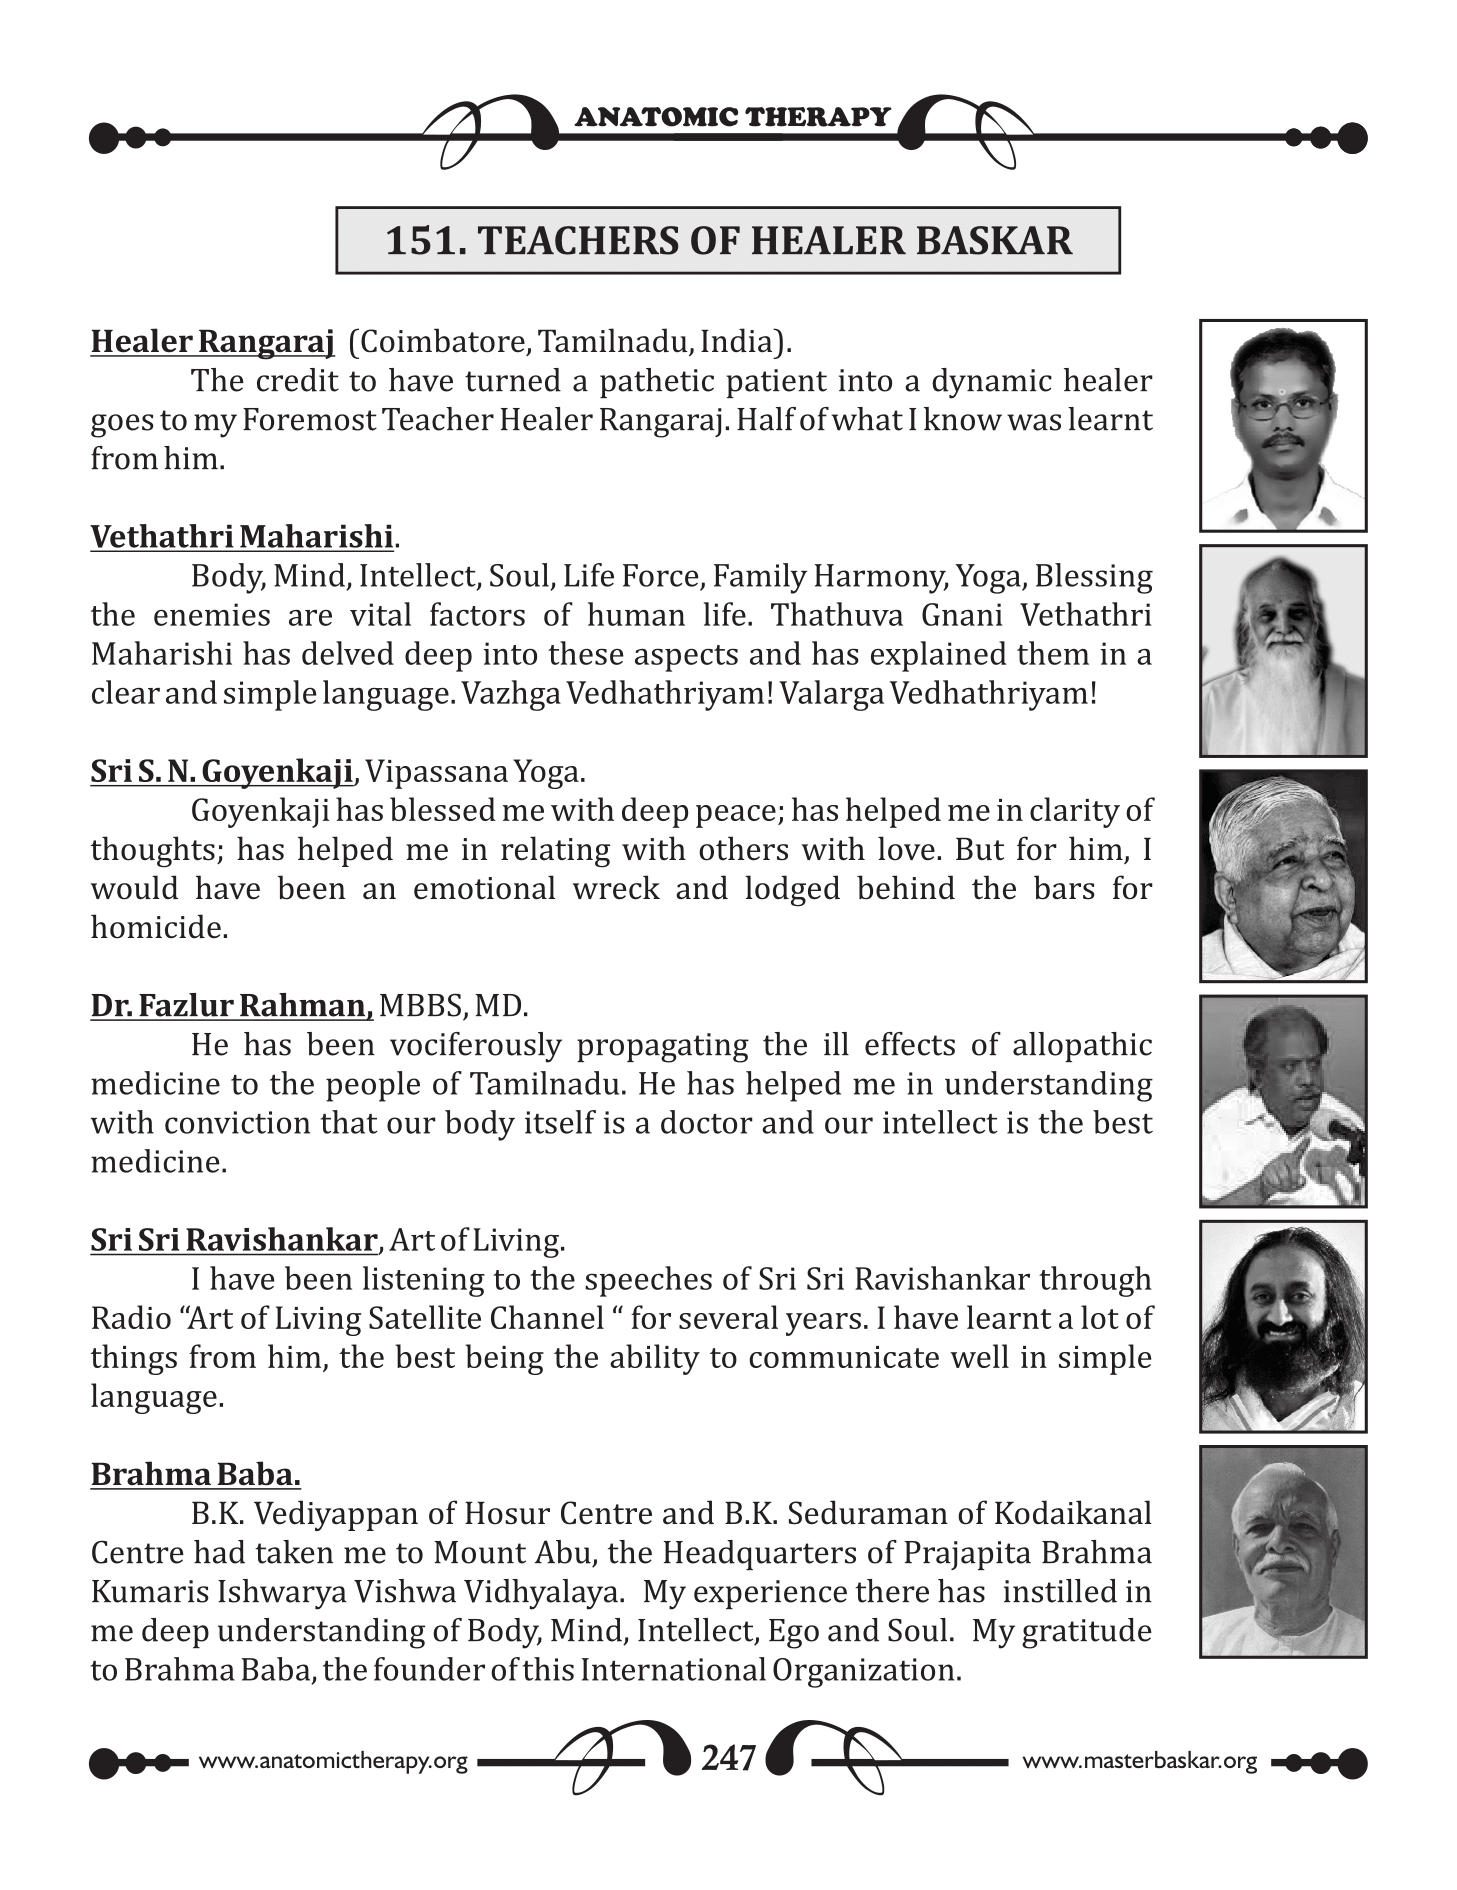 151. TEACHERS OF HEALER BASKAR - fresh2refresh.com